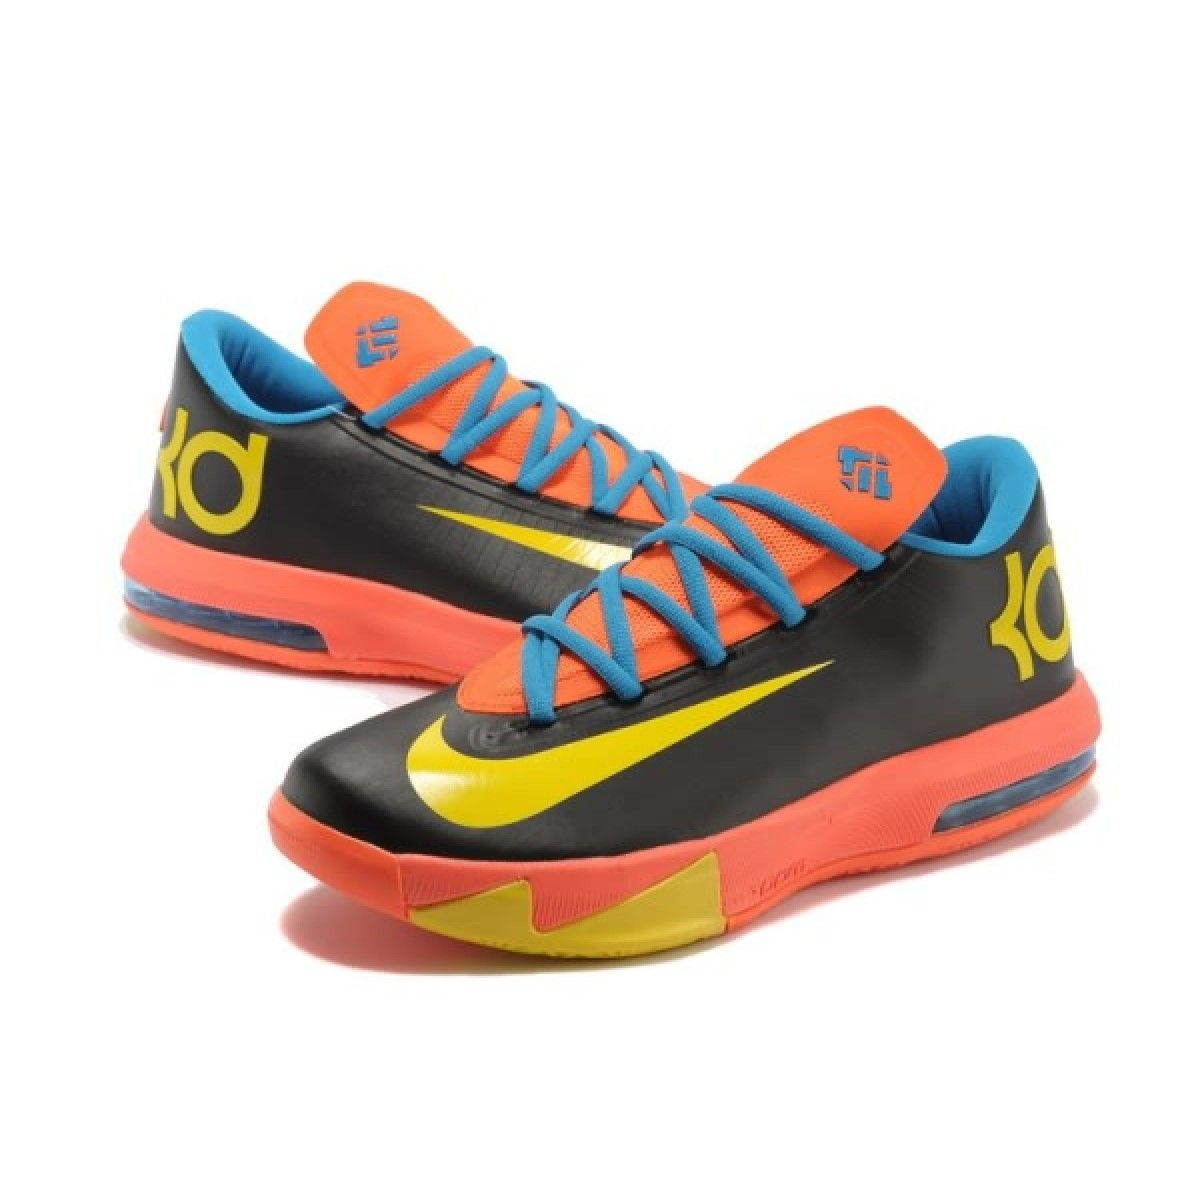 kd low top basketball shoes | More Views. Nike Kd ViNike Air ...